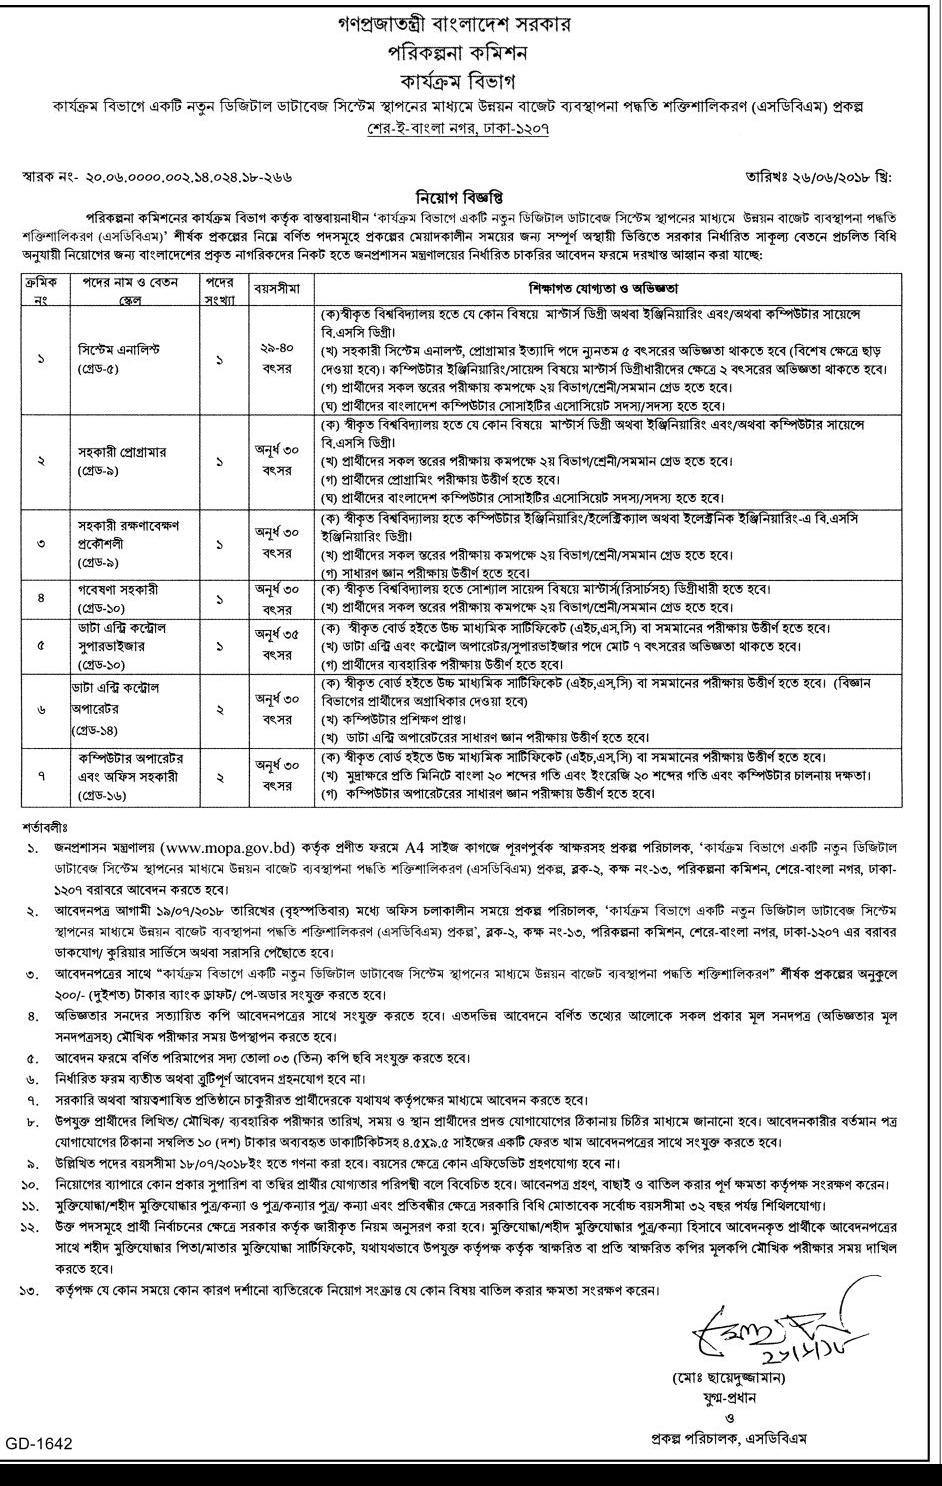 Planning Commission Bangladesh Job Circular -2018